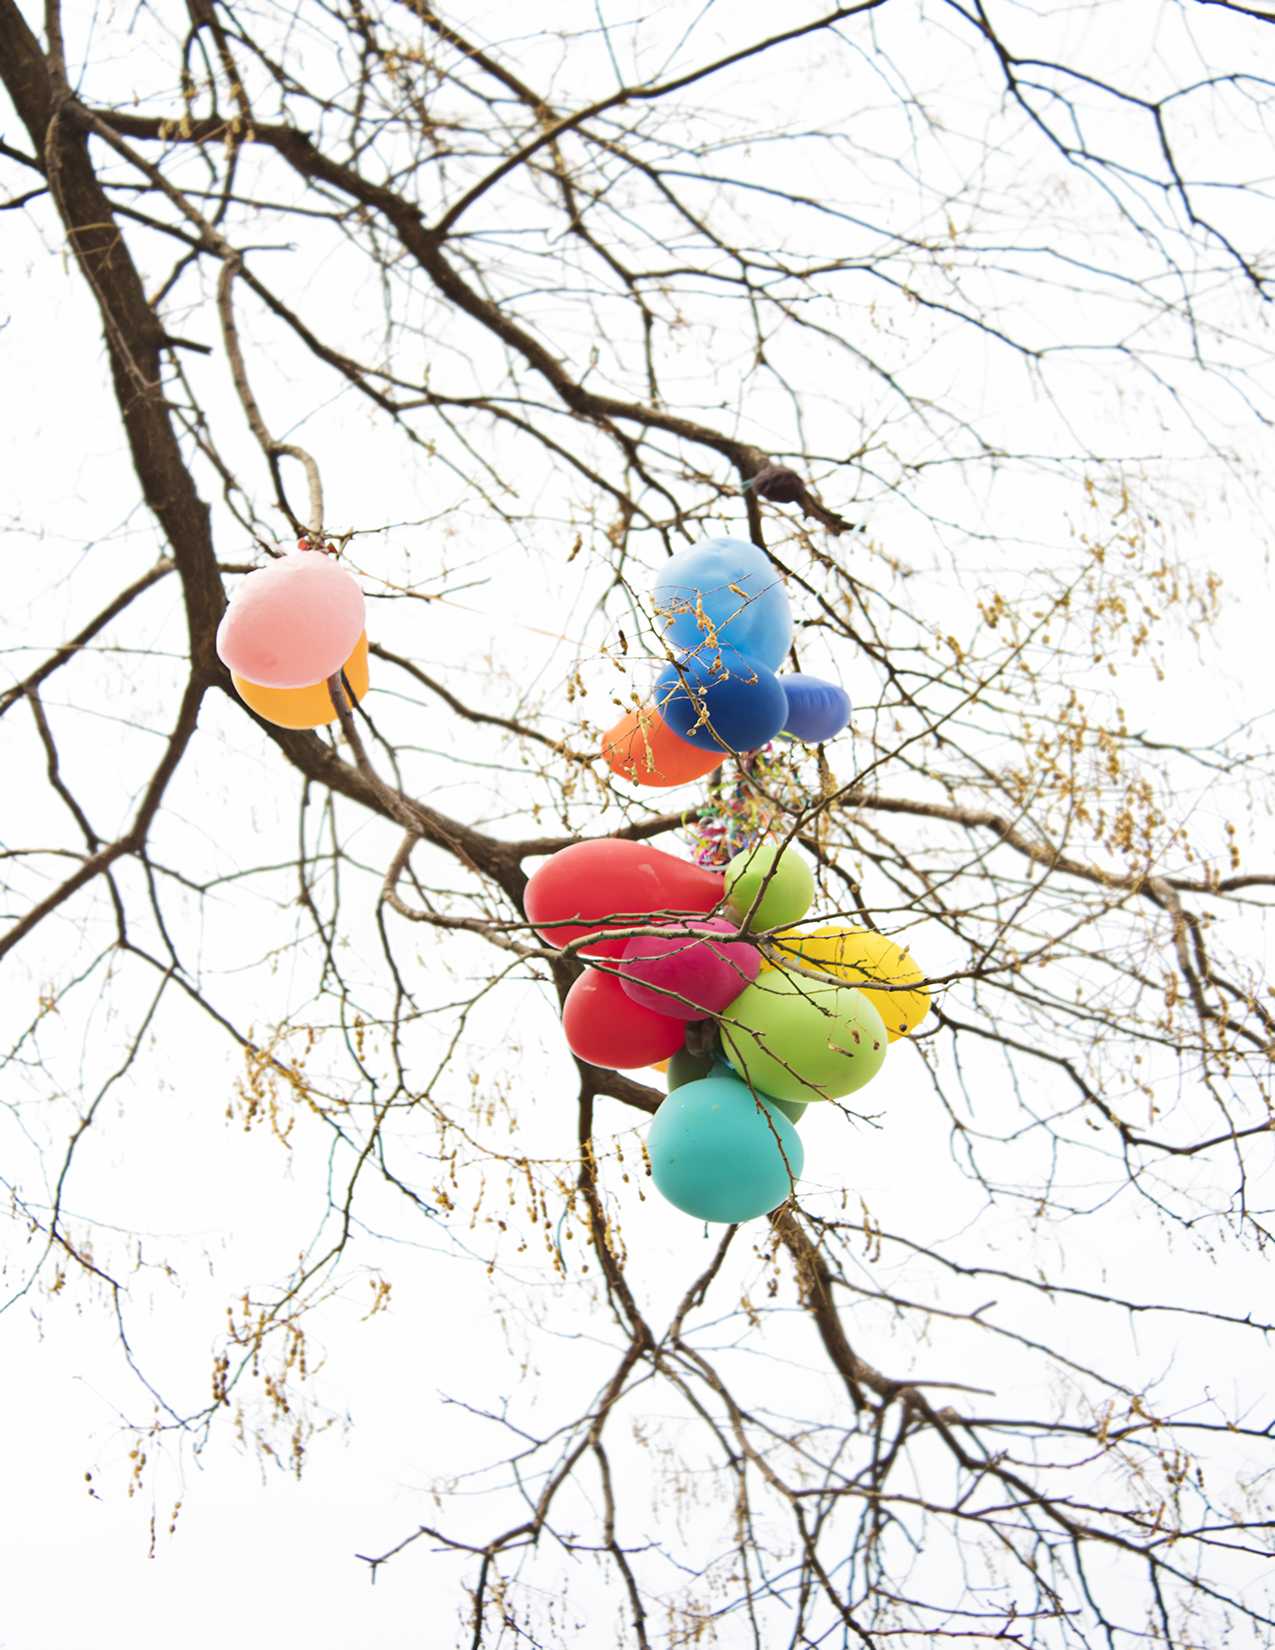 Eileen_Ko_Assignment_4_Balloons_in_Tree_Branches_Blue_Orange_Red_Green_Pink_Yellow